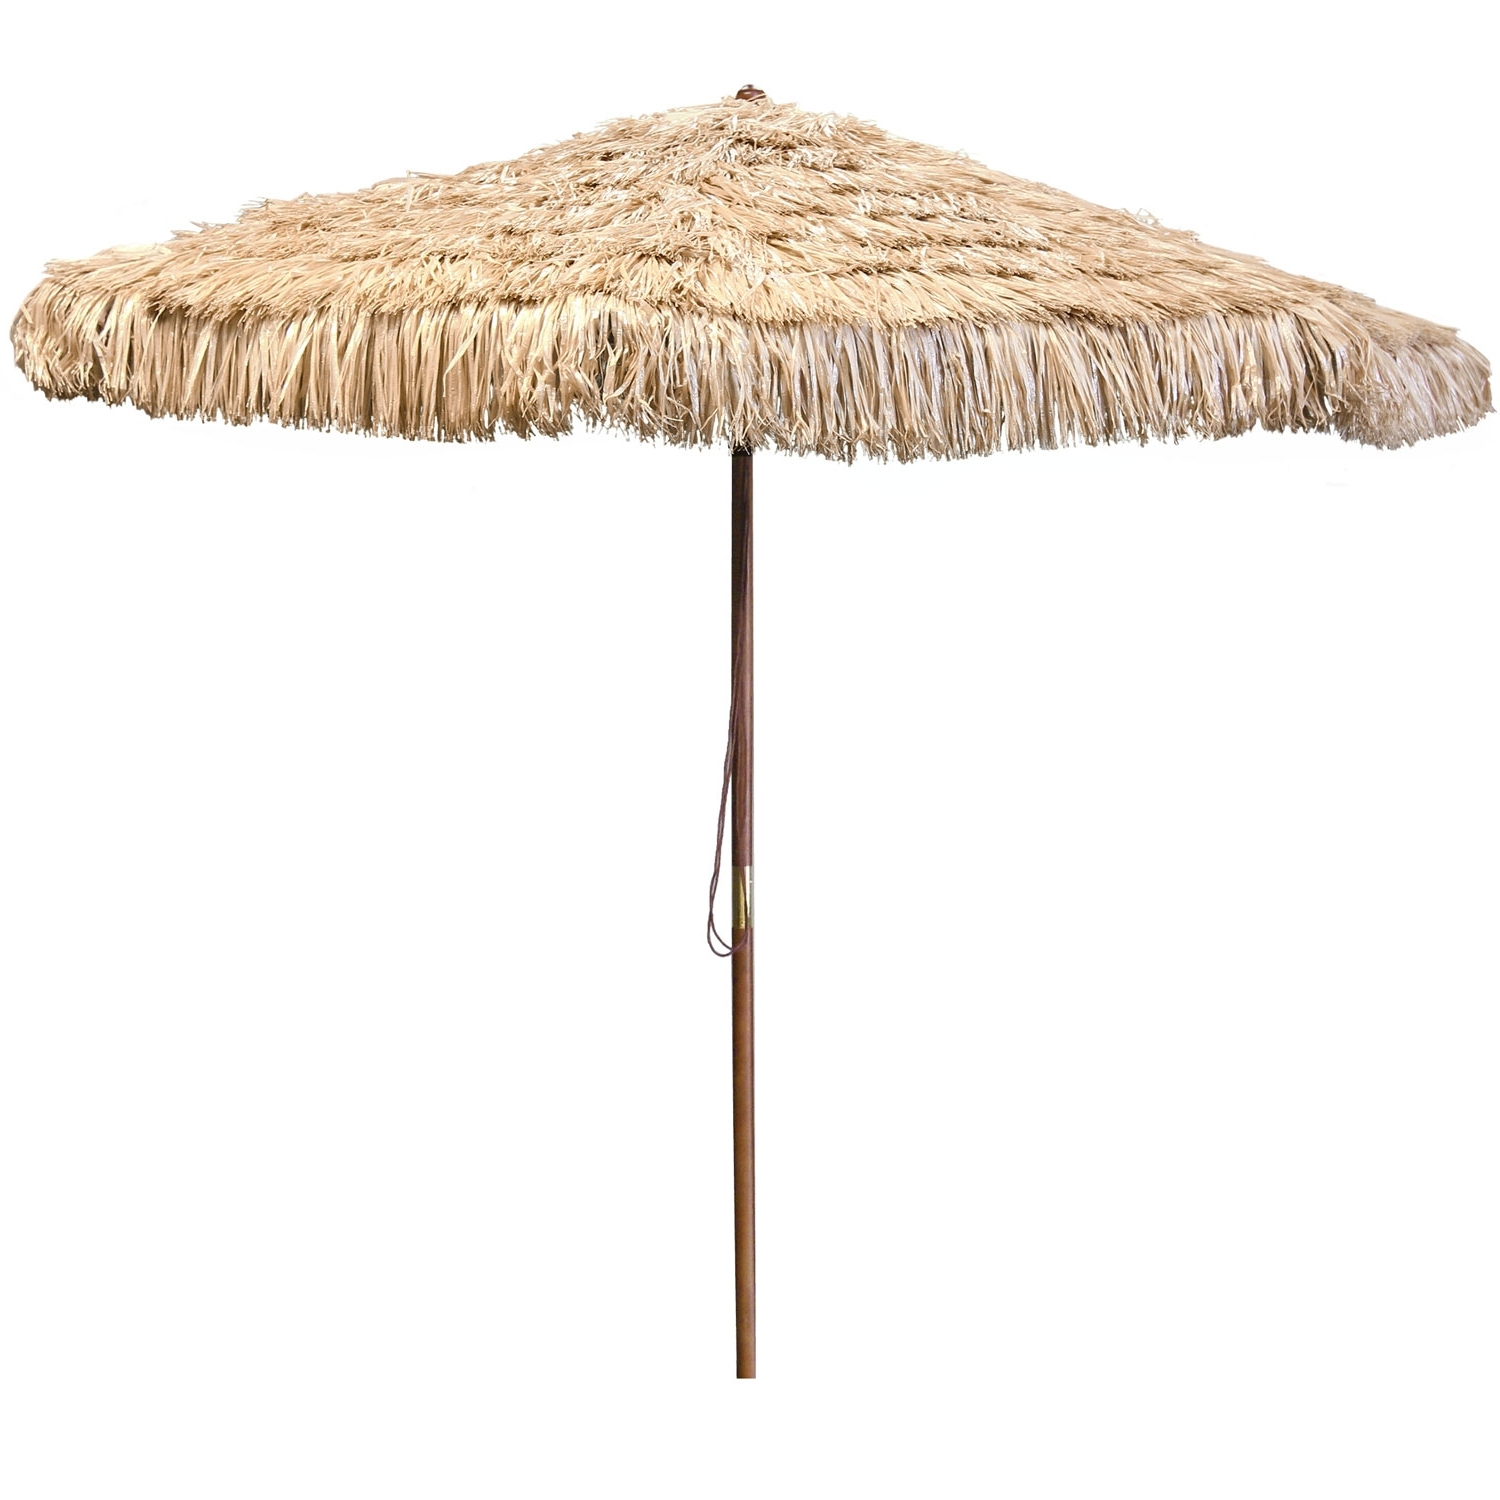 Most Recently Released Jordan Patio Umbrellas Throughout Jordan Manufacturing Company Natural Wooden Hula Umbrella Ump (View 12 of 20)